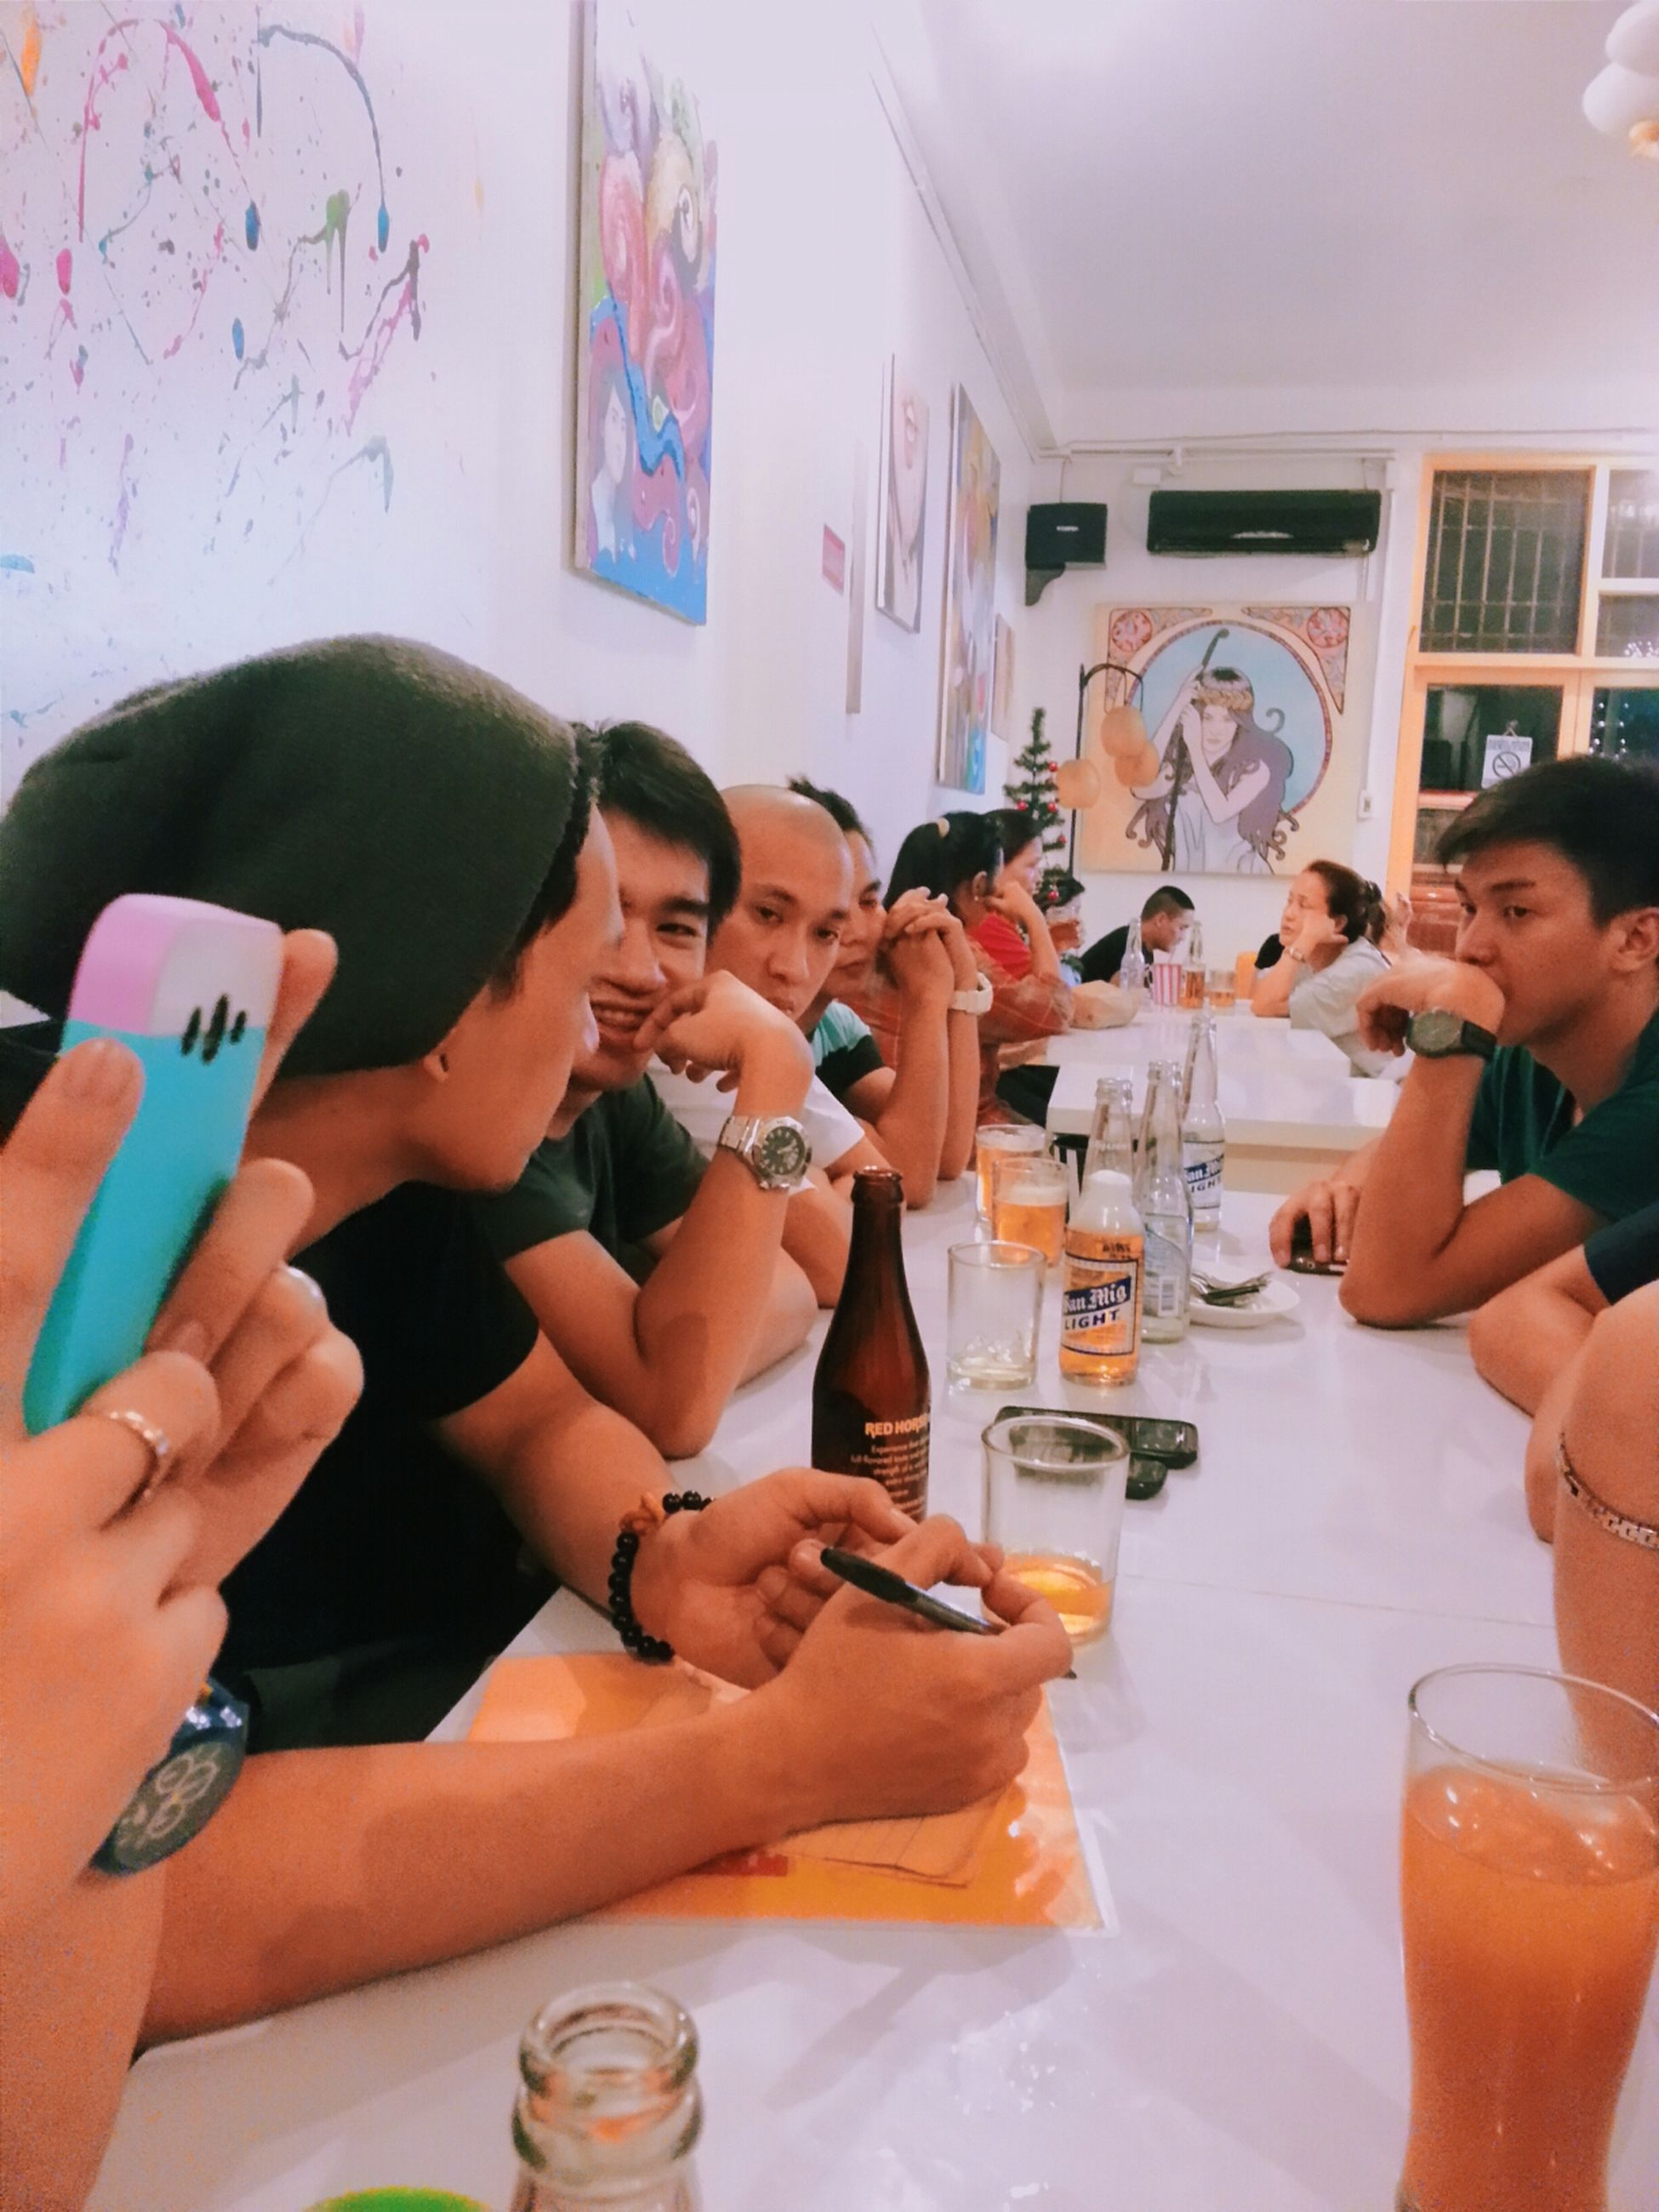 indoors, lifestyles, leisure activity, person, holding, young adult, casual clothing, young women, happiness, food and drink, smiling, table, togetherness, sitting, communication